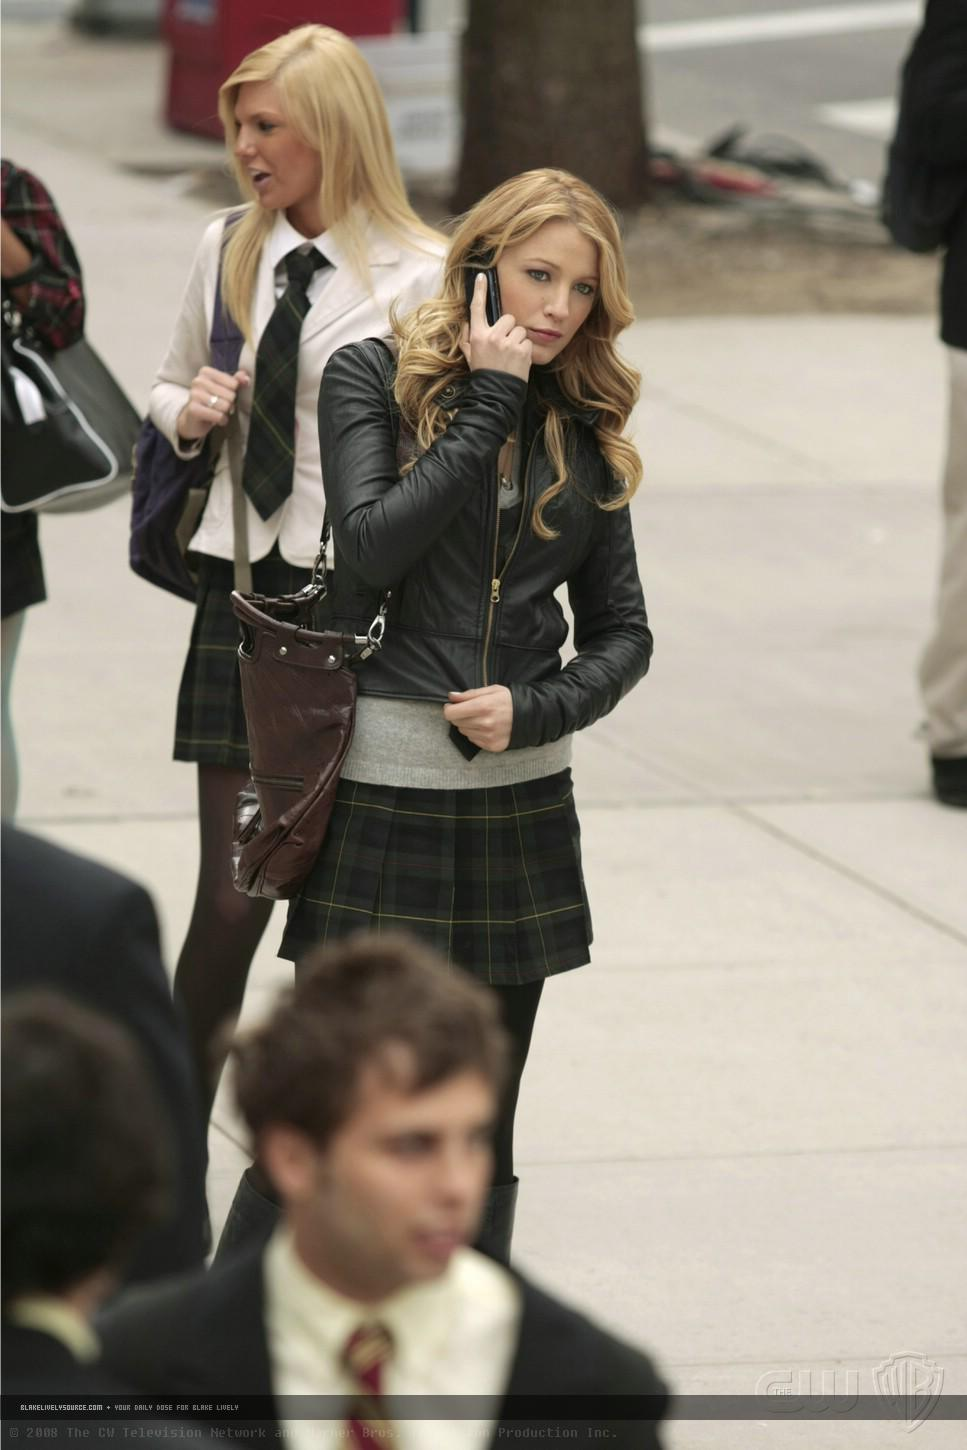 http://images2.fanpop.com/image/photos/10900000/1-14-Episode-Stills-serena-van-der-woodsen-10964085-967-1450.jpg